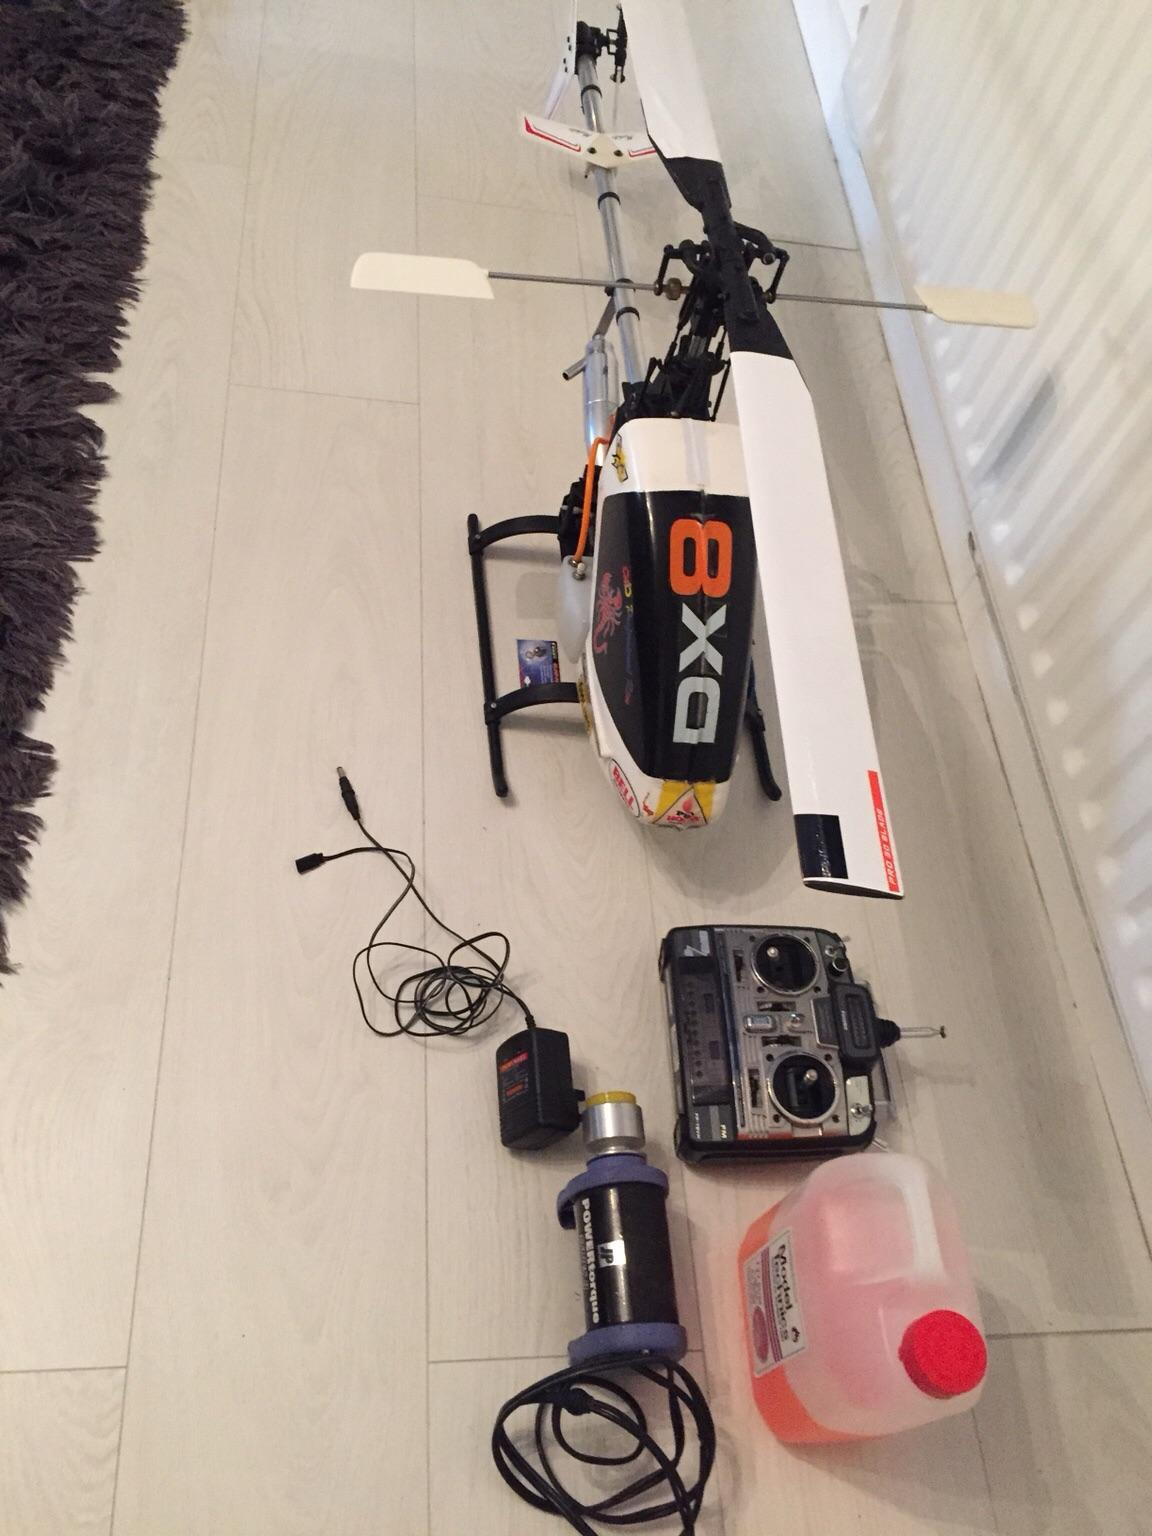 Petrol Rc Heli Robbe Moskito Basic Vintage In Dudley For 200 00 For Sale Shpock